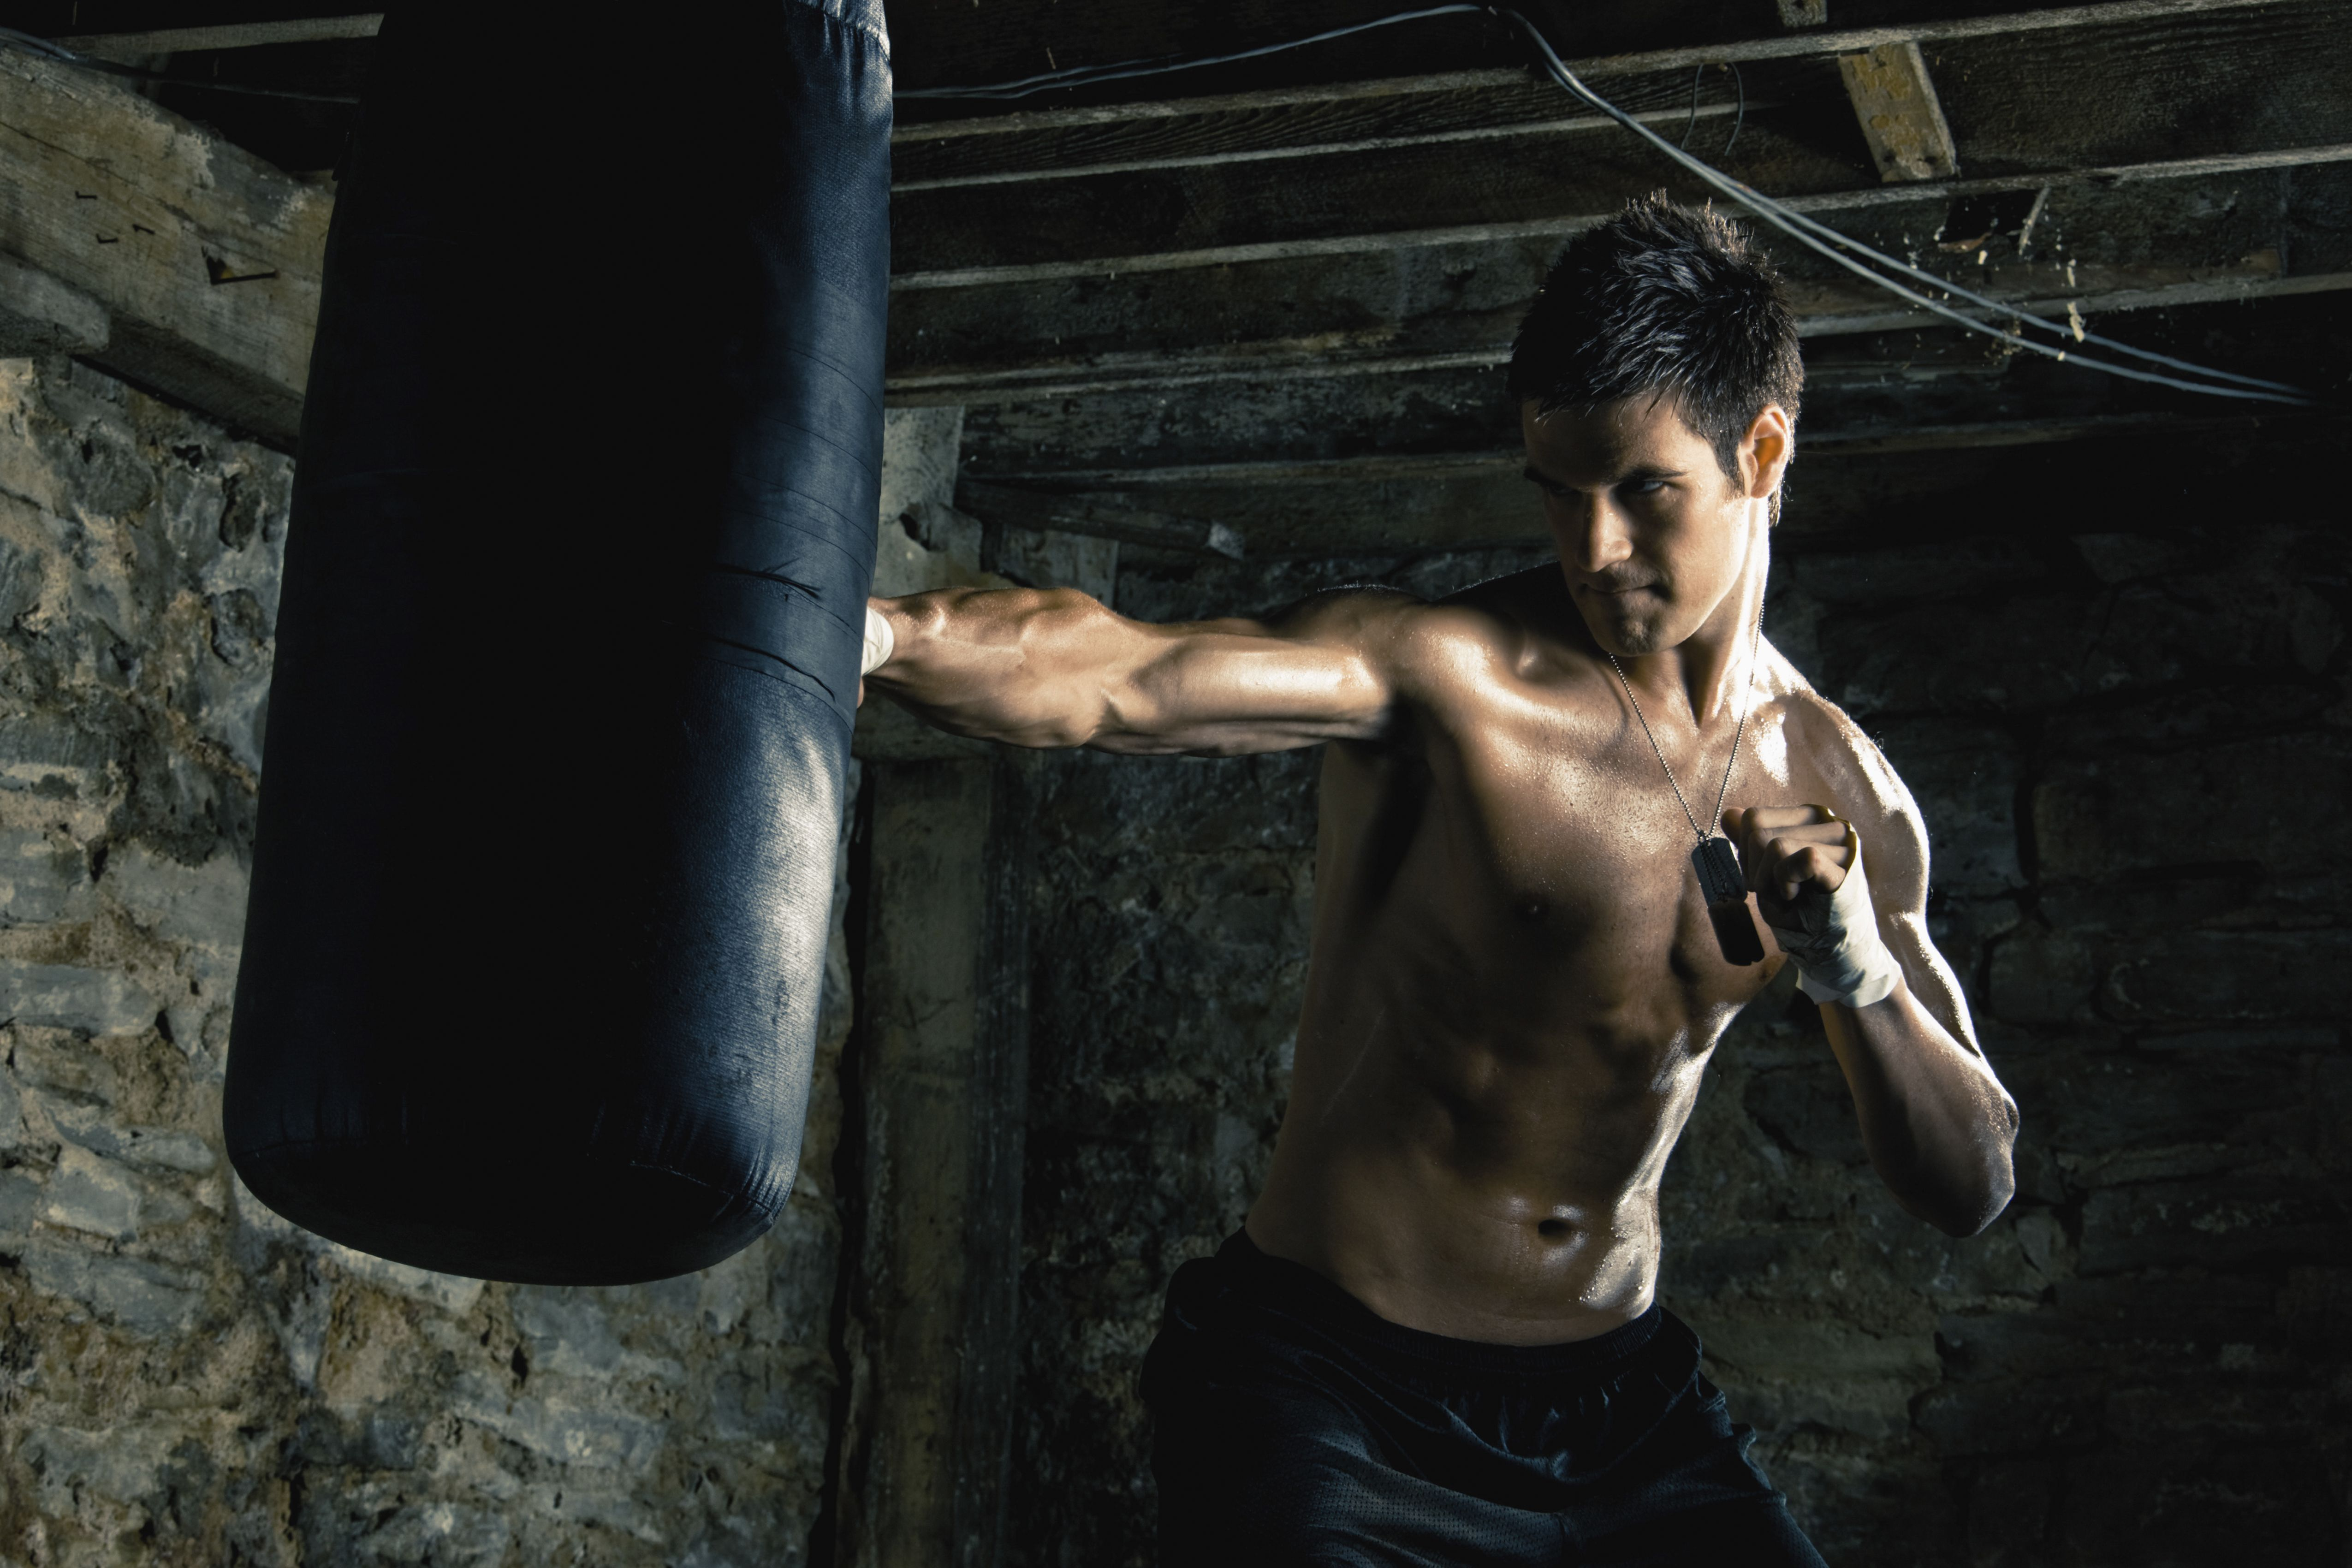 10 Best Heavy Bags to Train With - Top Punching Bags for Boxing